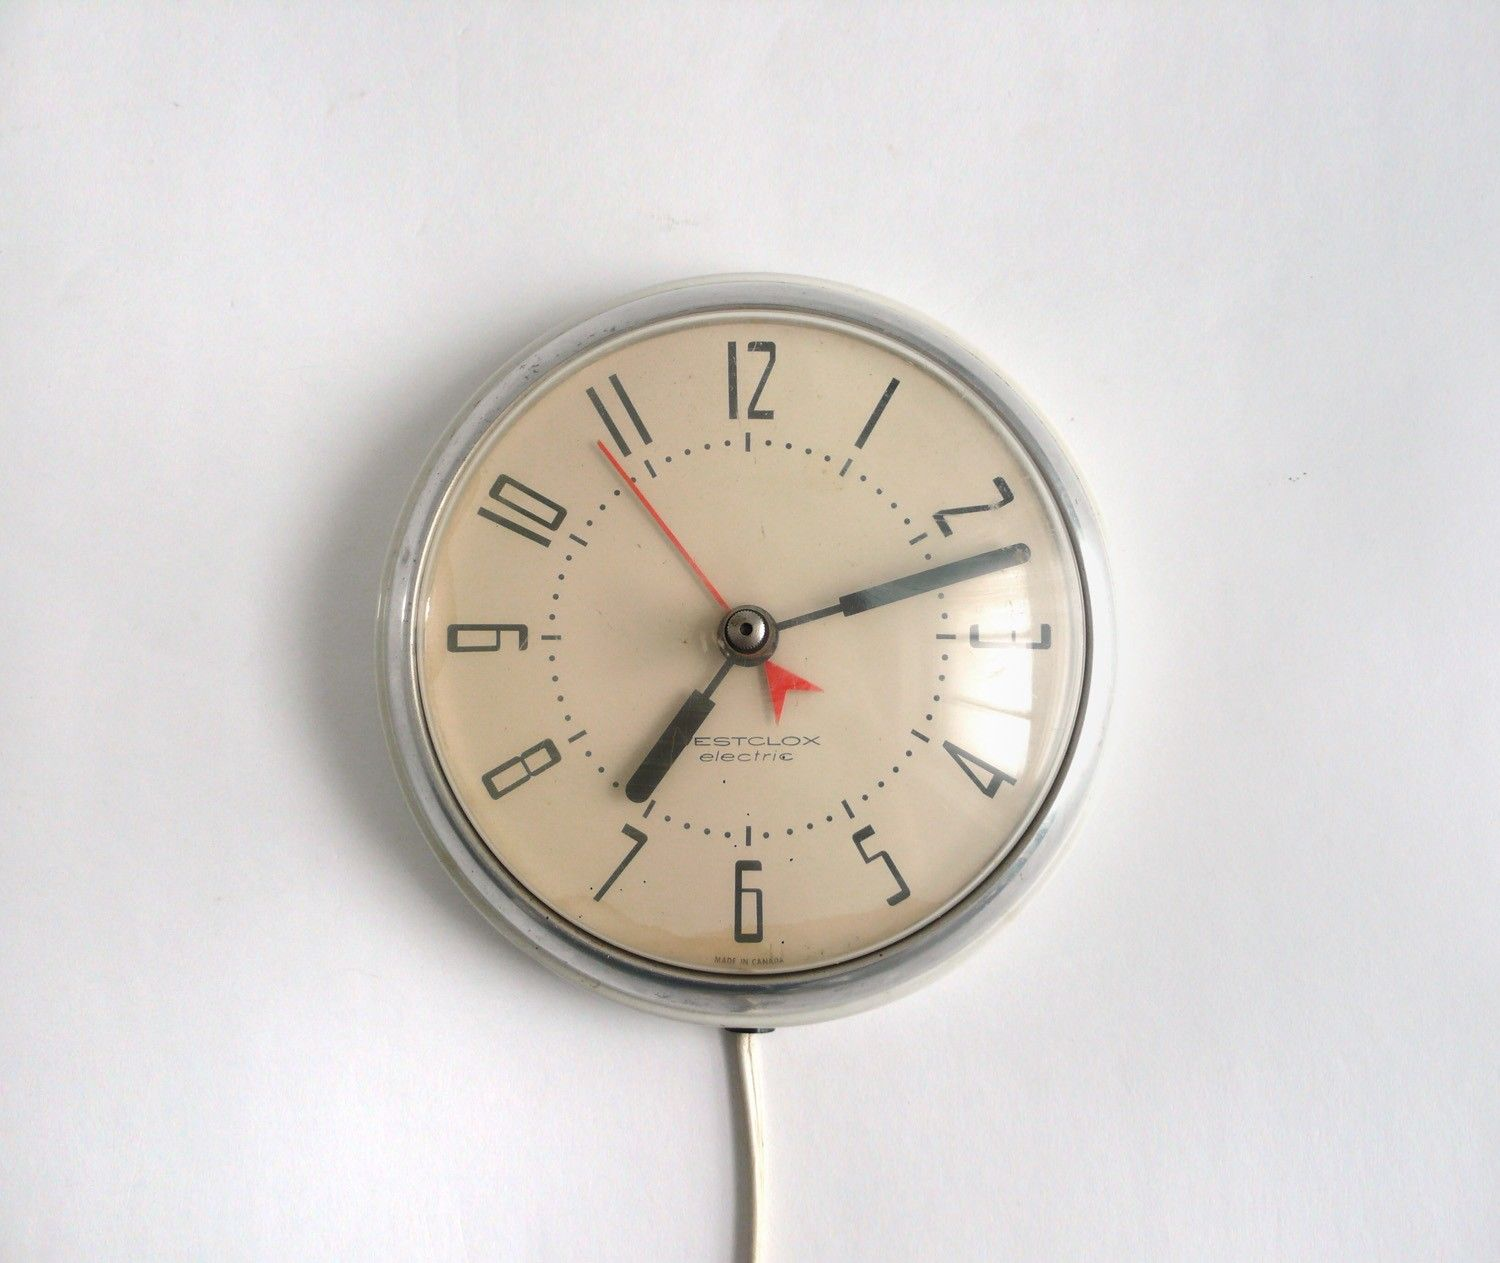 Modern Kitchen Clocks Vintage Corded Wall Clock Miscellaneous Clock Retro